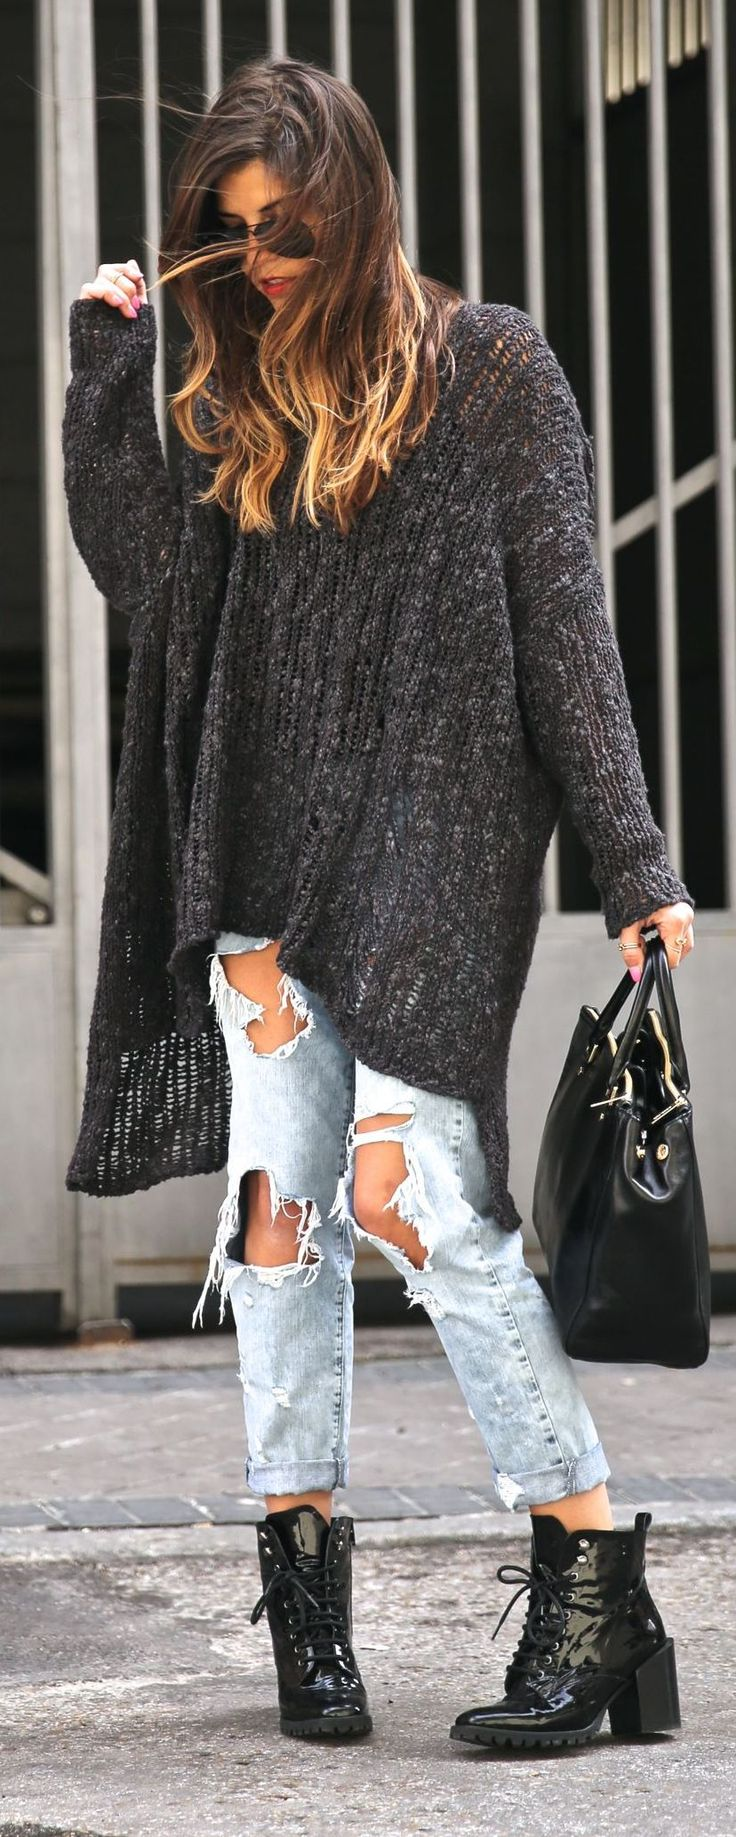 17 Best ideas about Casual Grunge Outfits on Pinterest | Grunge outfits Grunge style winter and ...